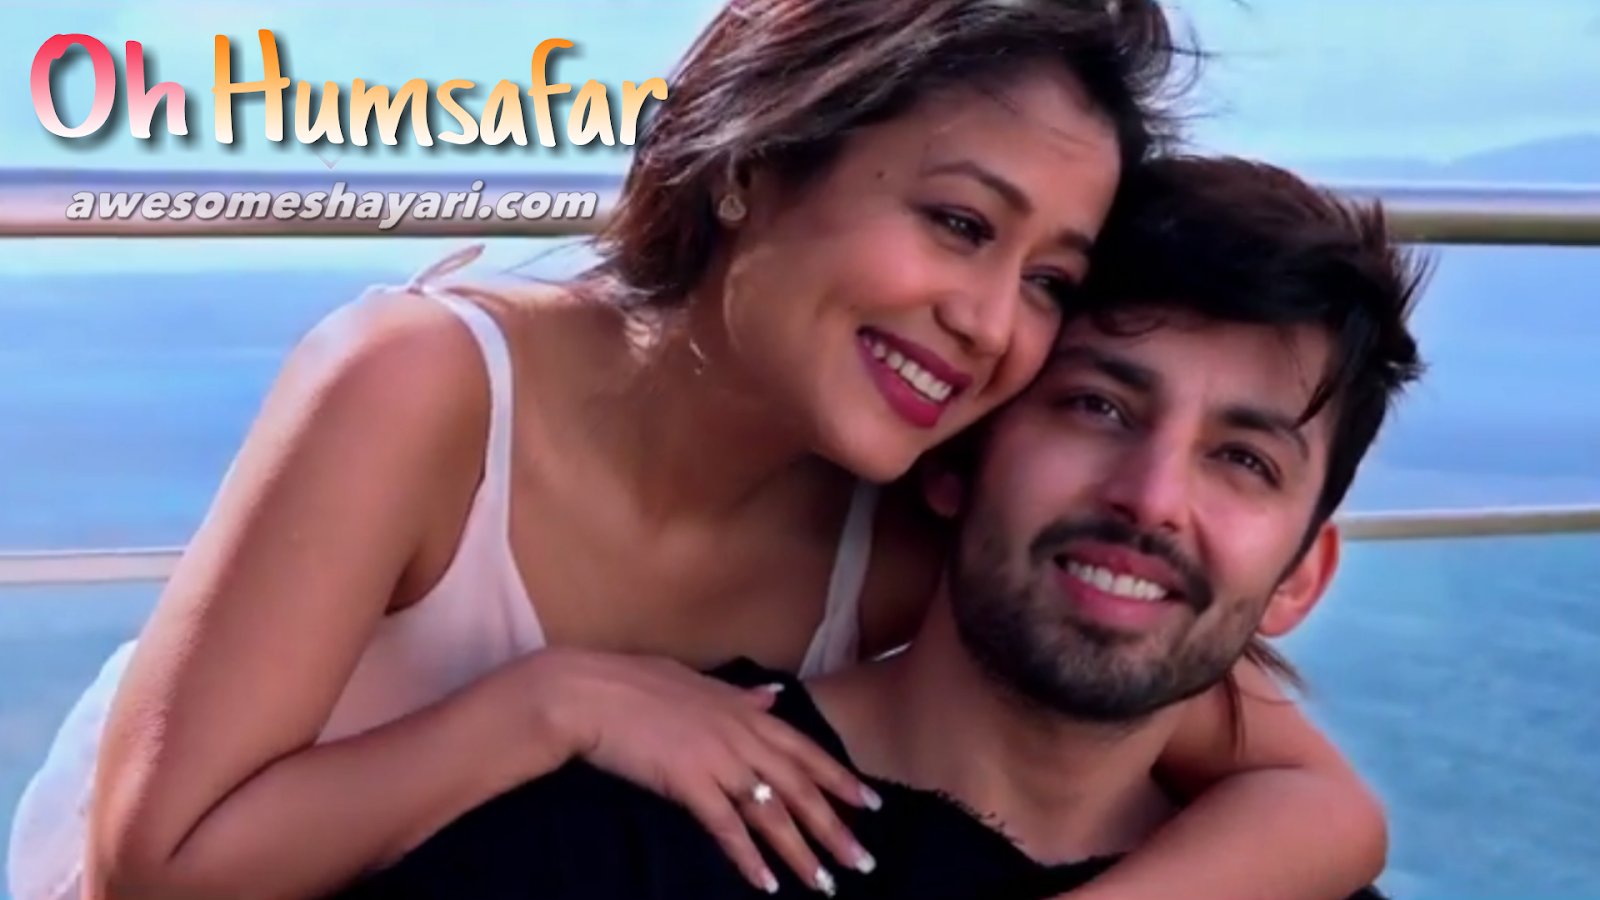 Oh Humsafar song images, Neha Kakkar & himansh kohli cute photos